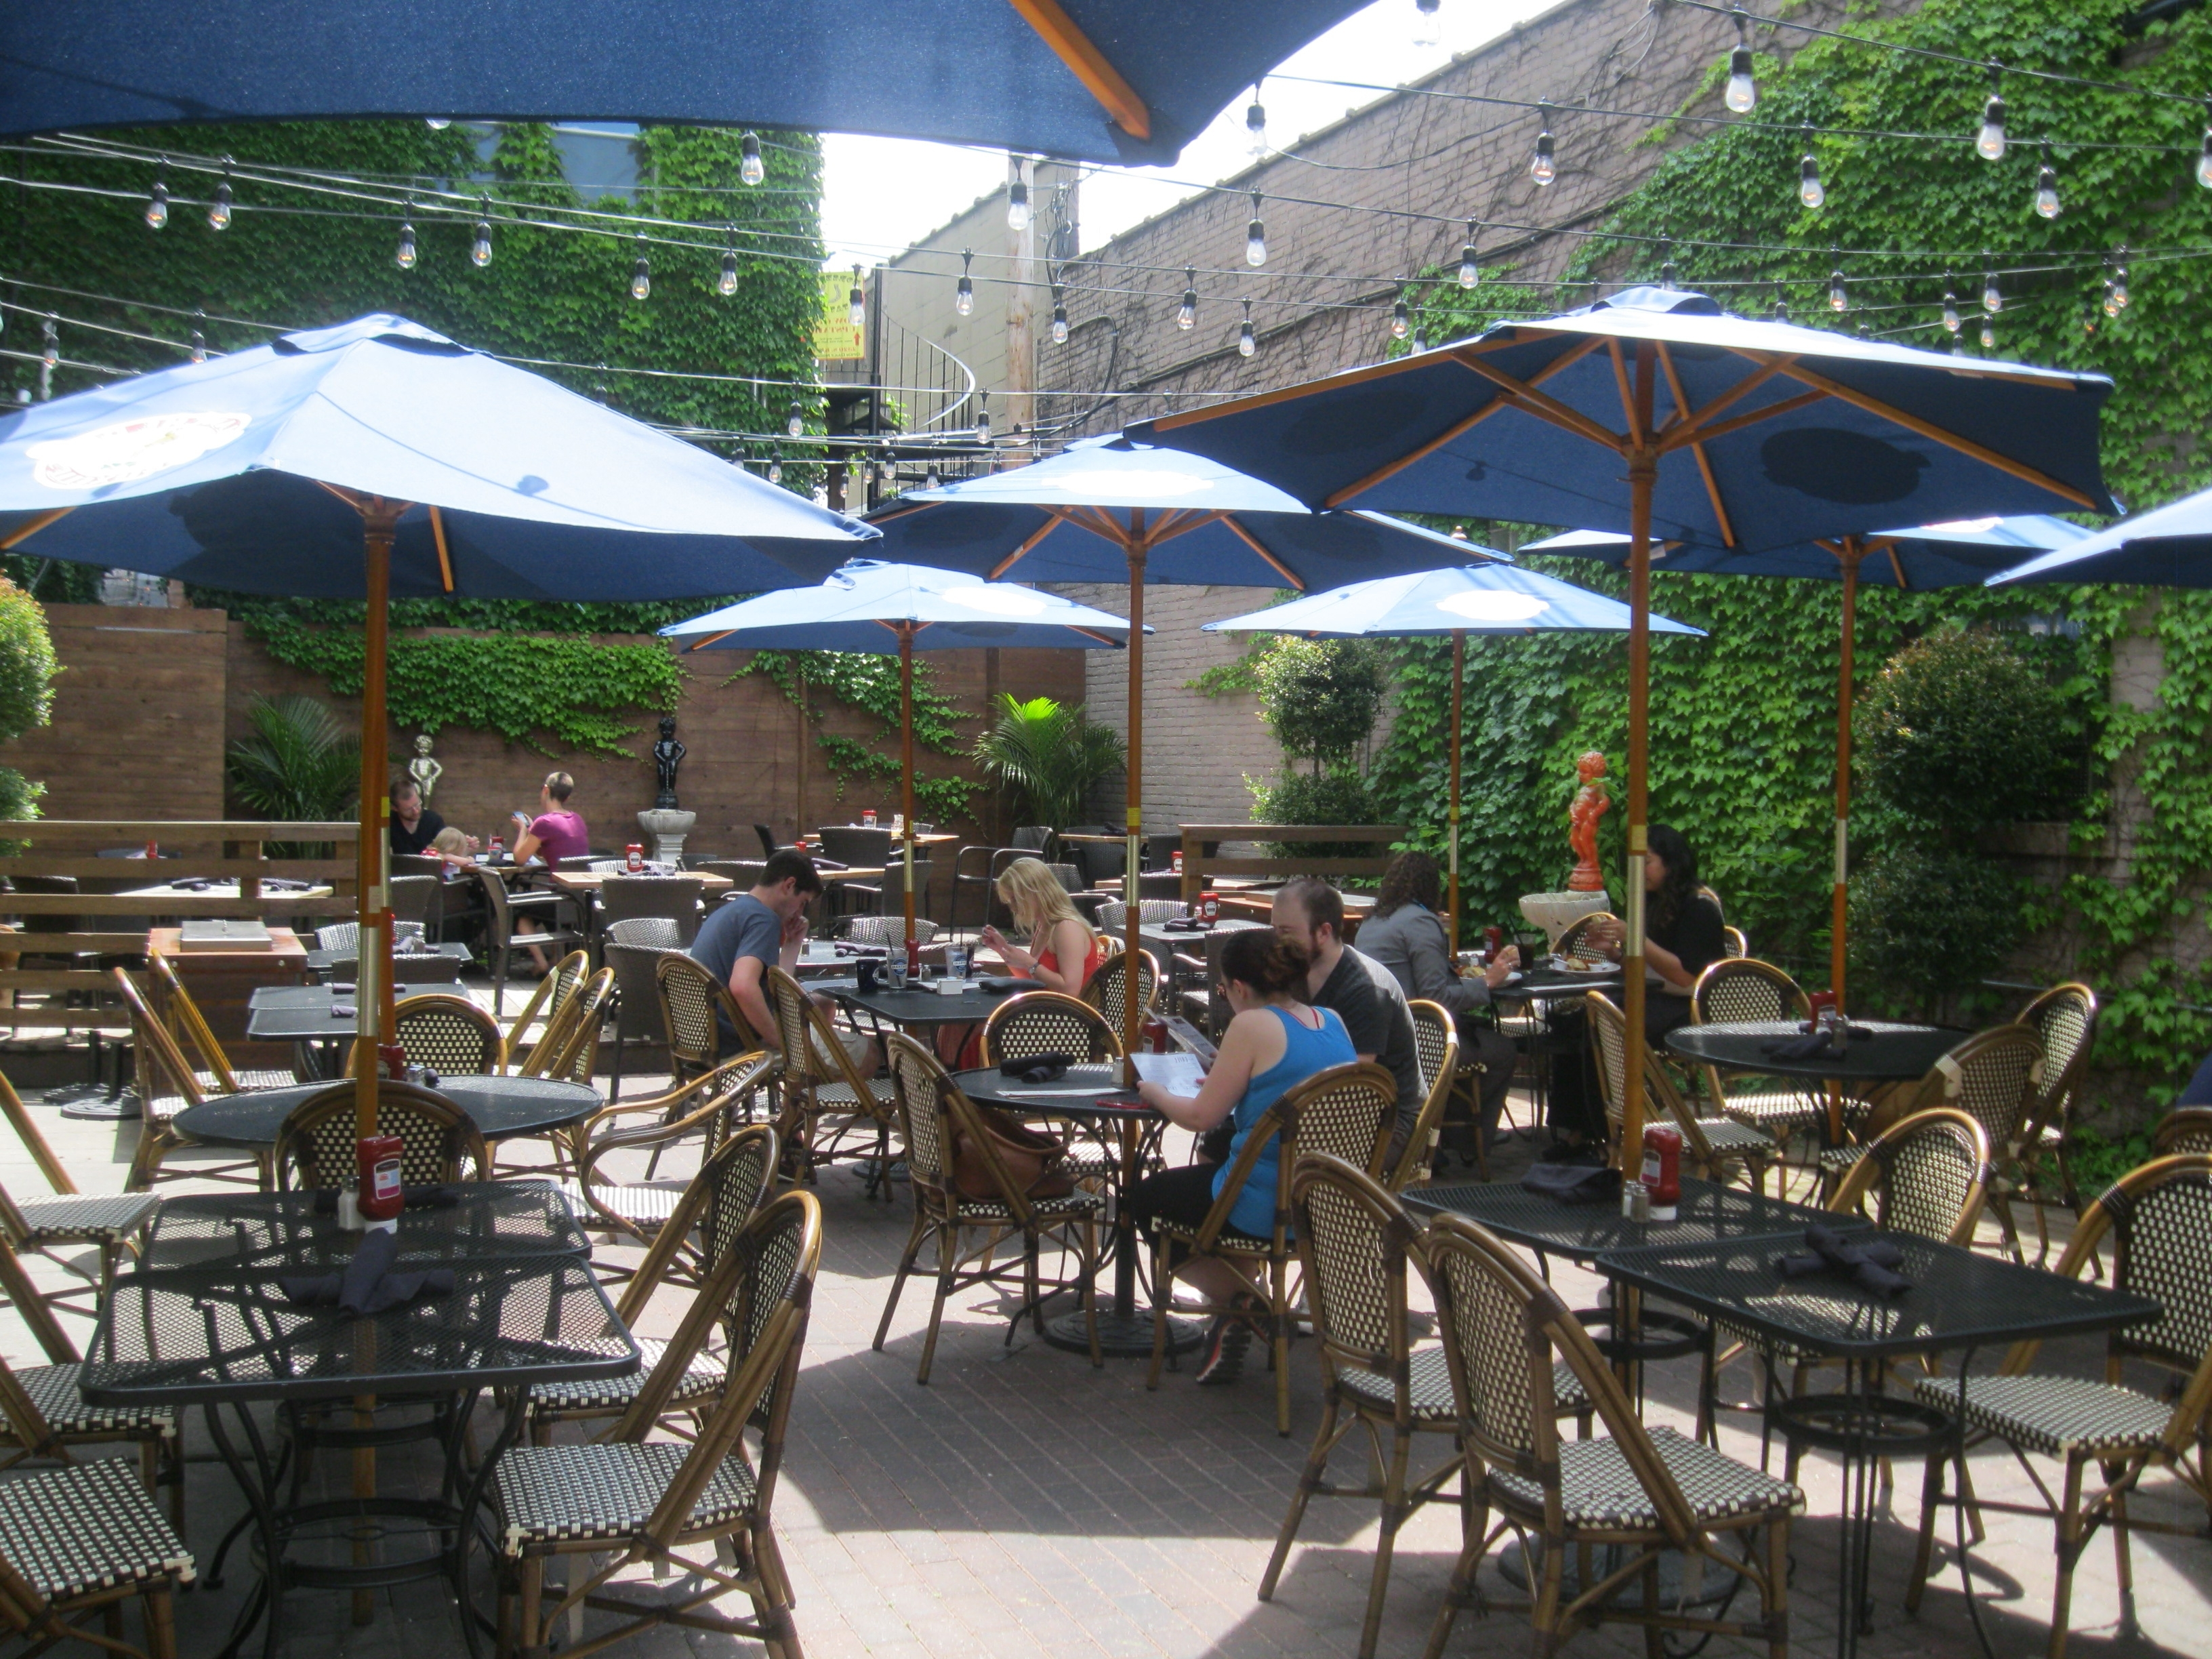 2018 Dining: 50 Great Places For Patio Dining » Urban Milwaukee With Regard To Patio Dining Umbrellas (View 1 of 20)